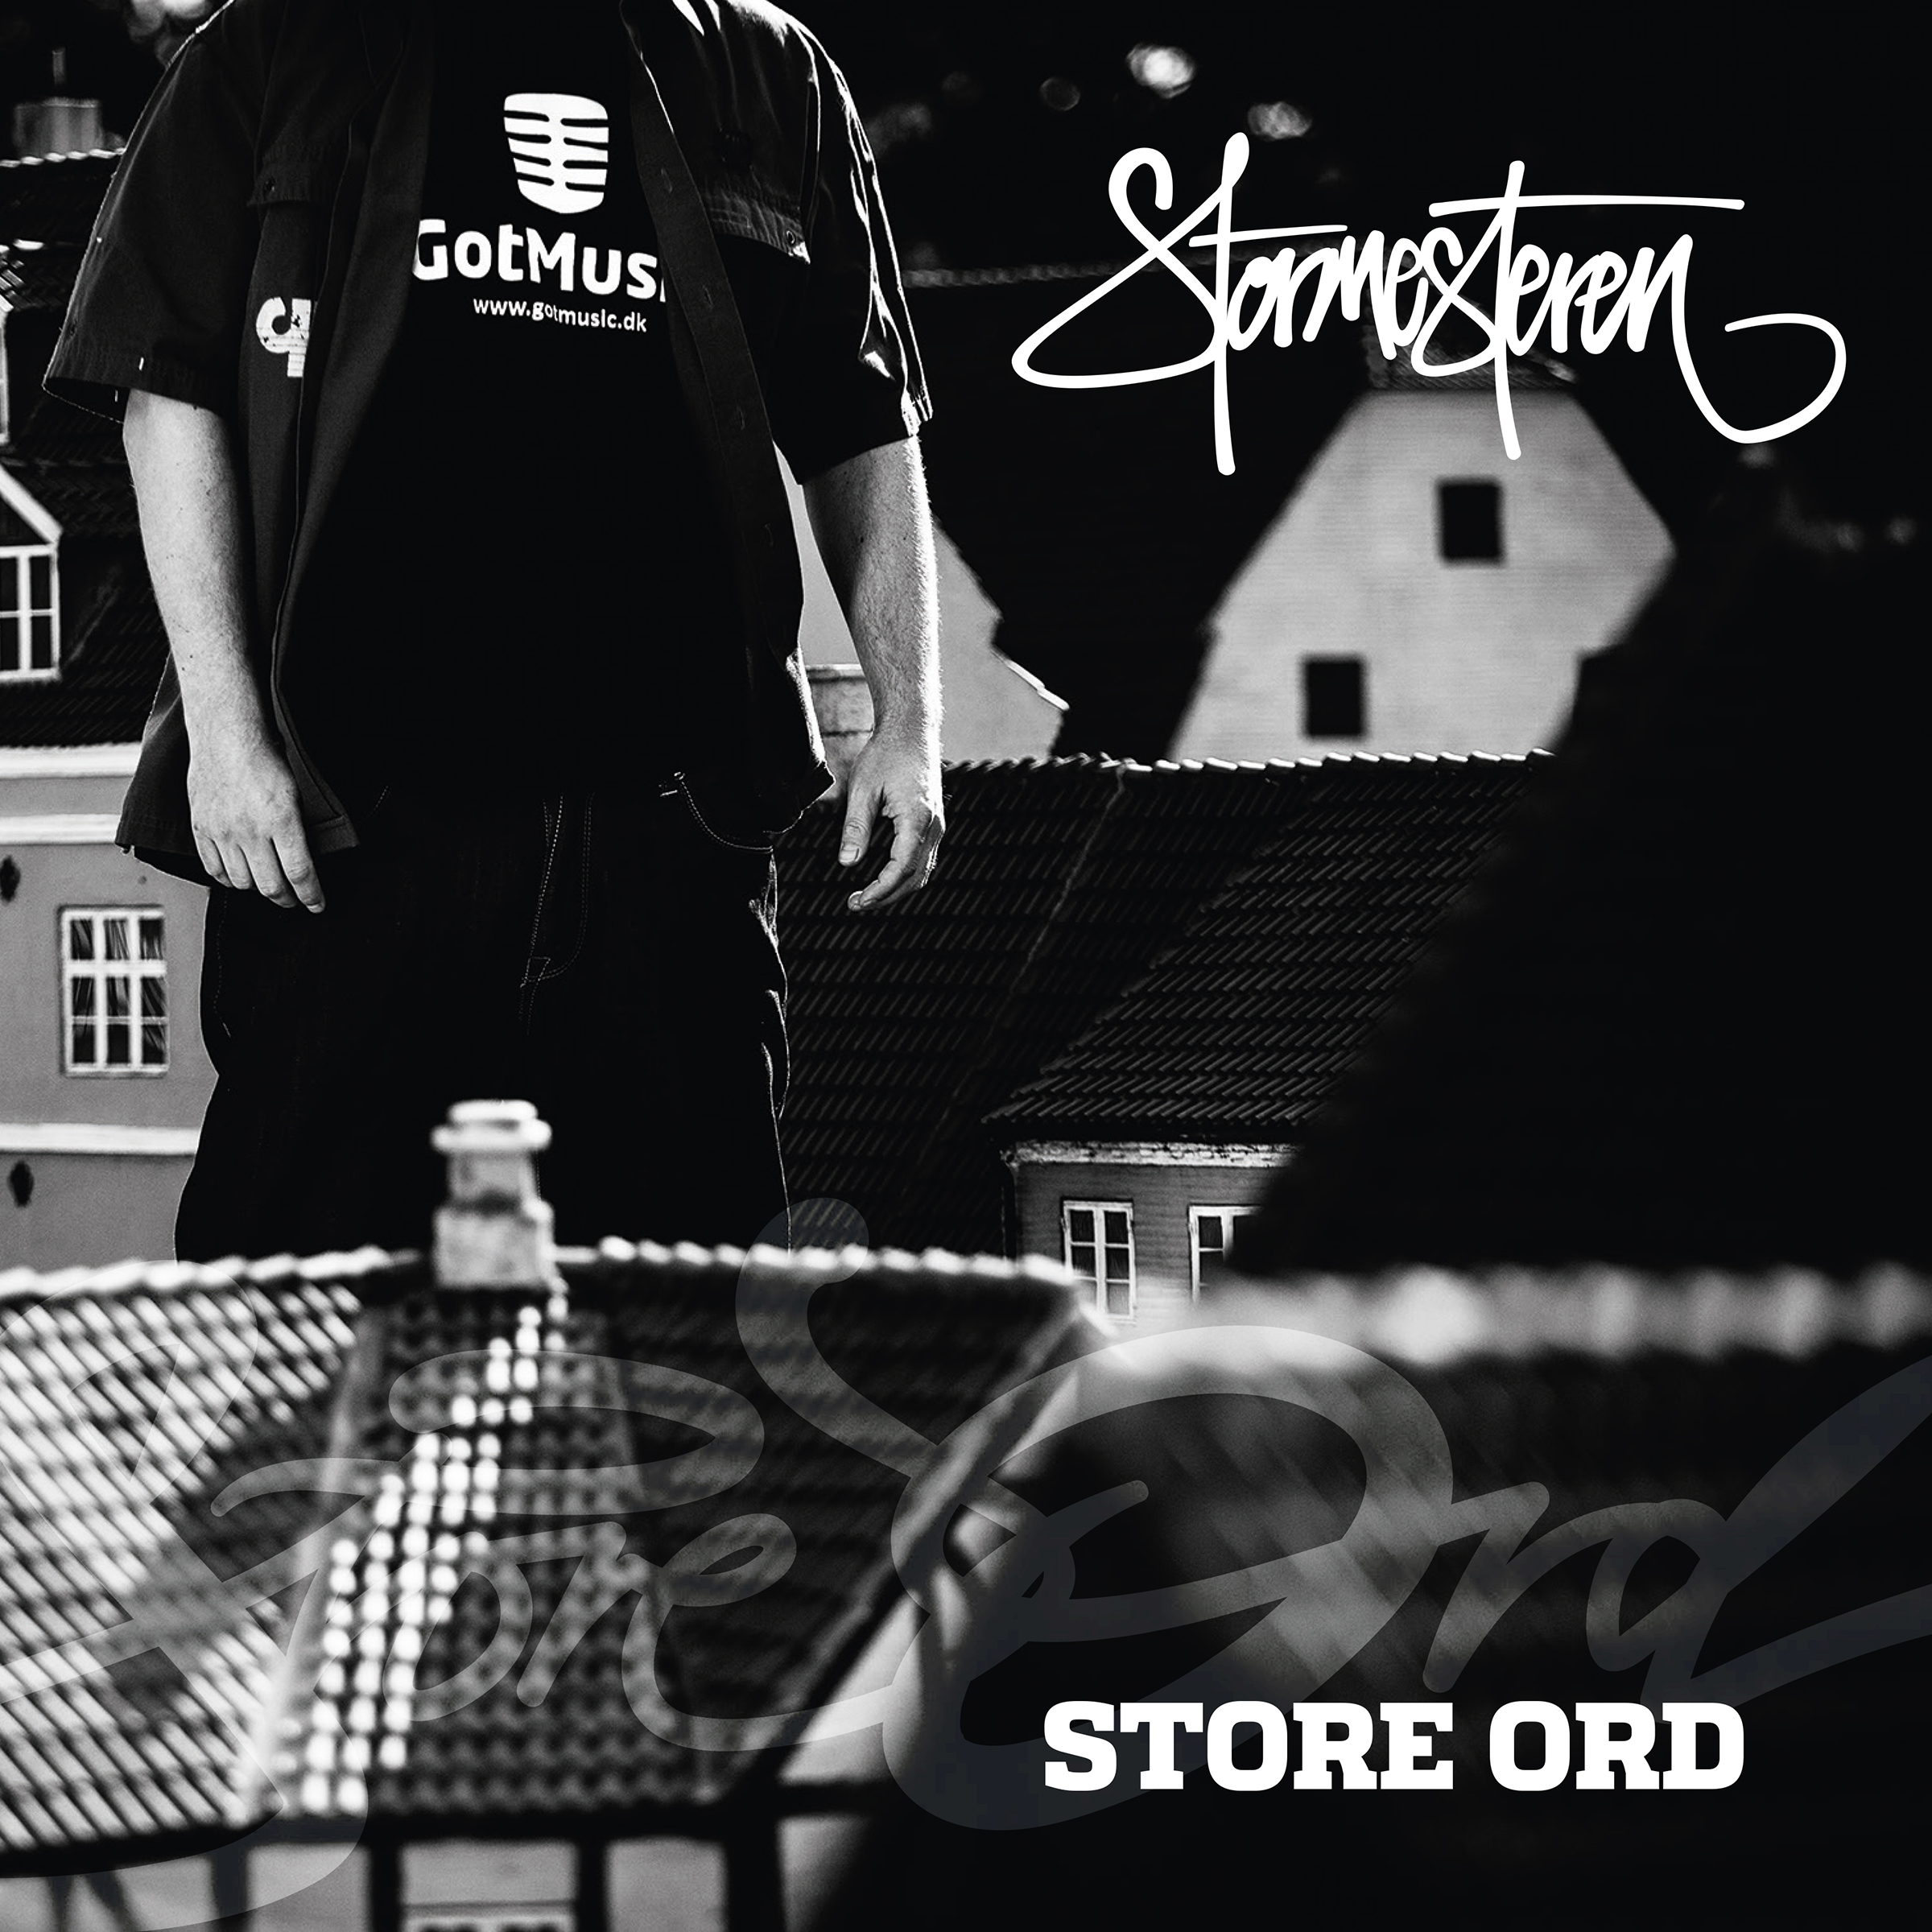 store ord helvede